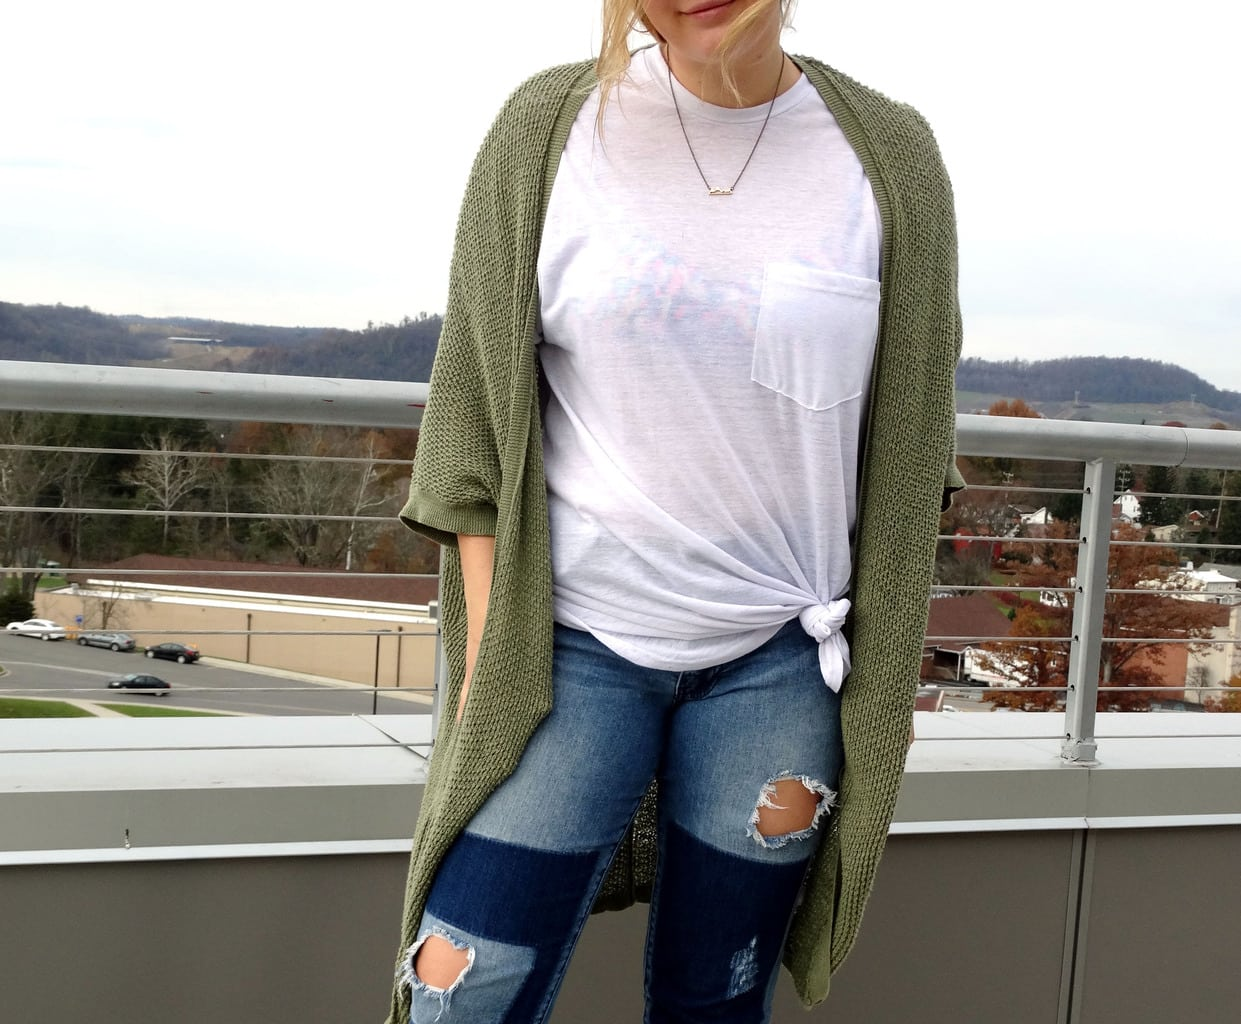 Mel wears a loose-fitted white pocket tied t-shirt with a cozy forest green cardigan.